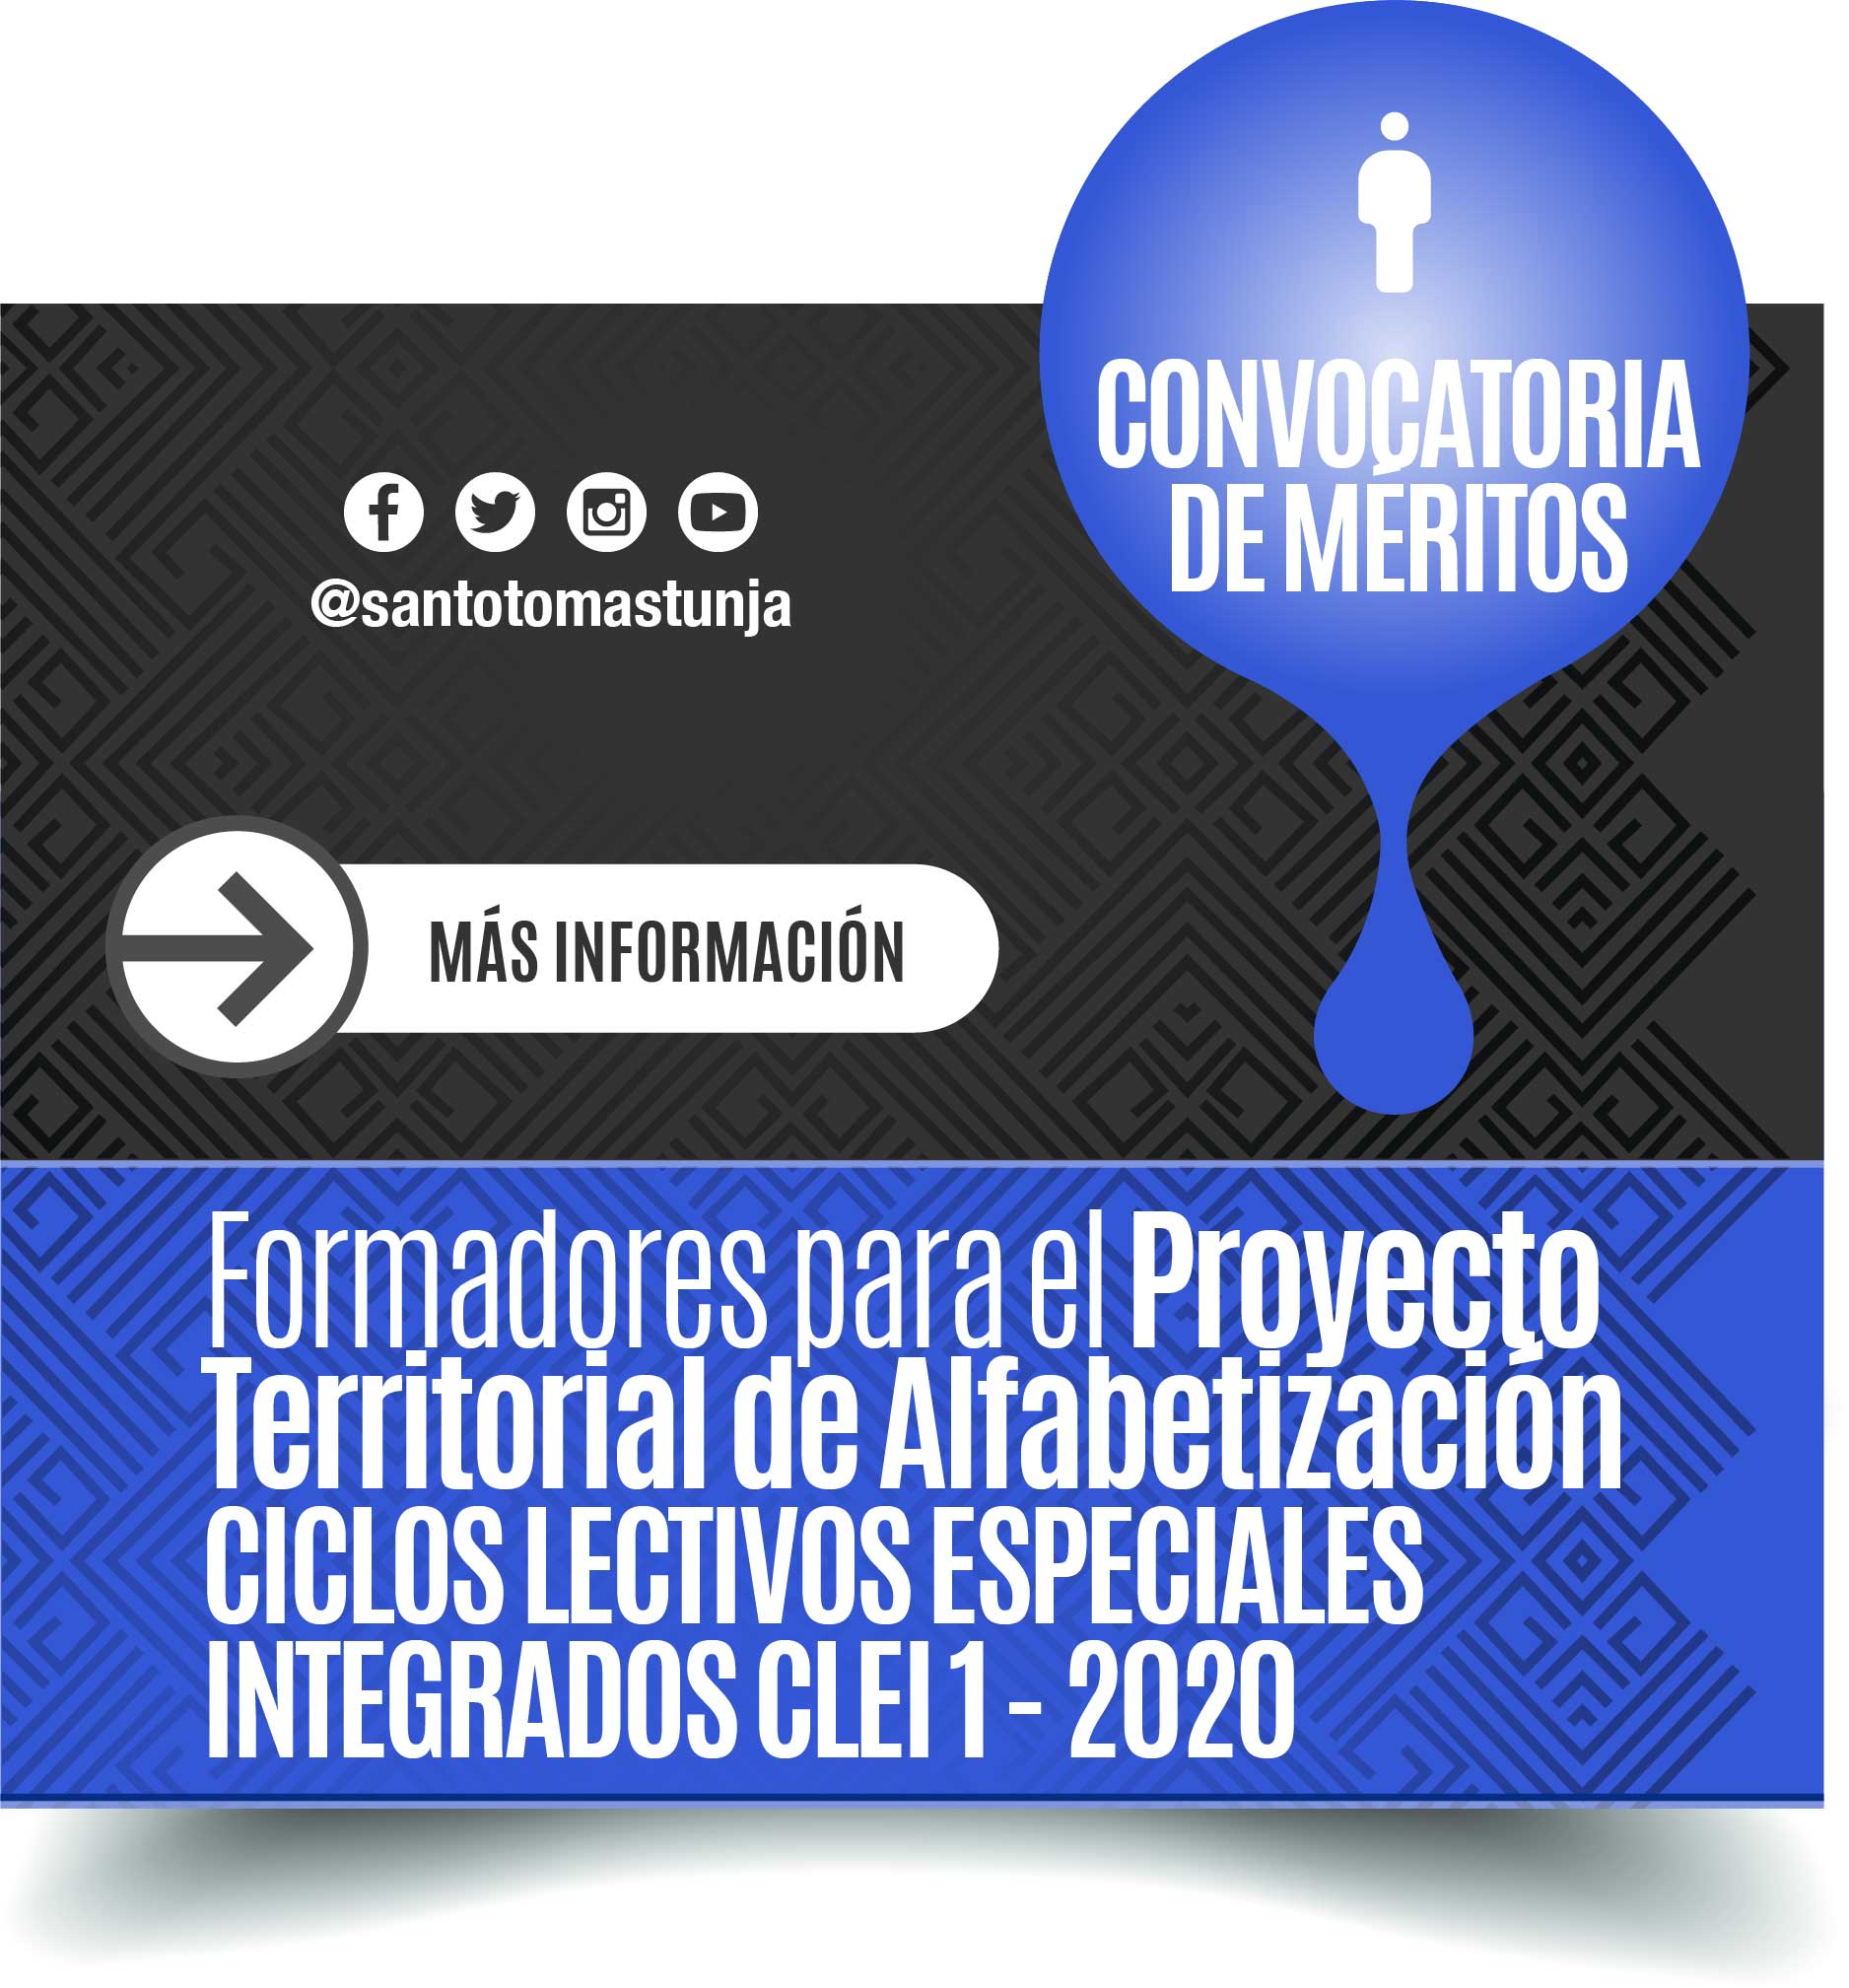 Convocatoria laboral meritos formadores